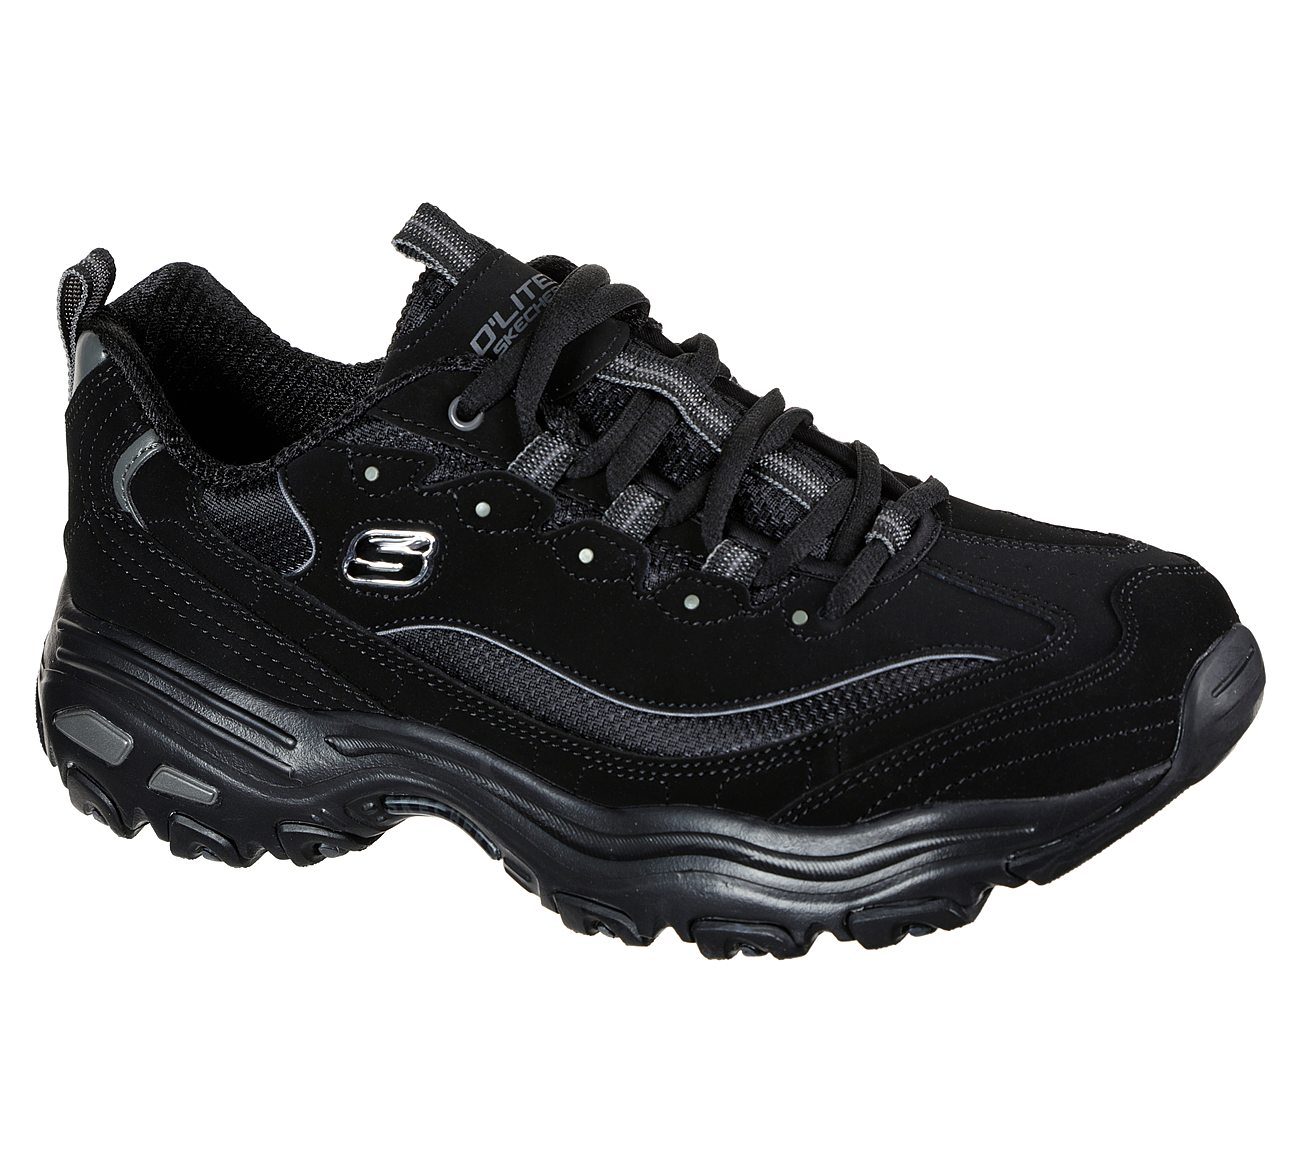 ladies skechers size 7